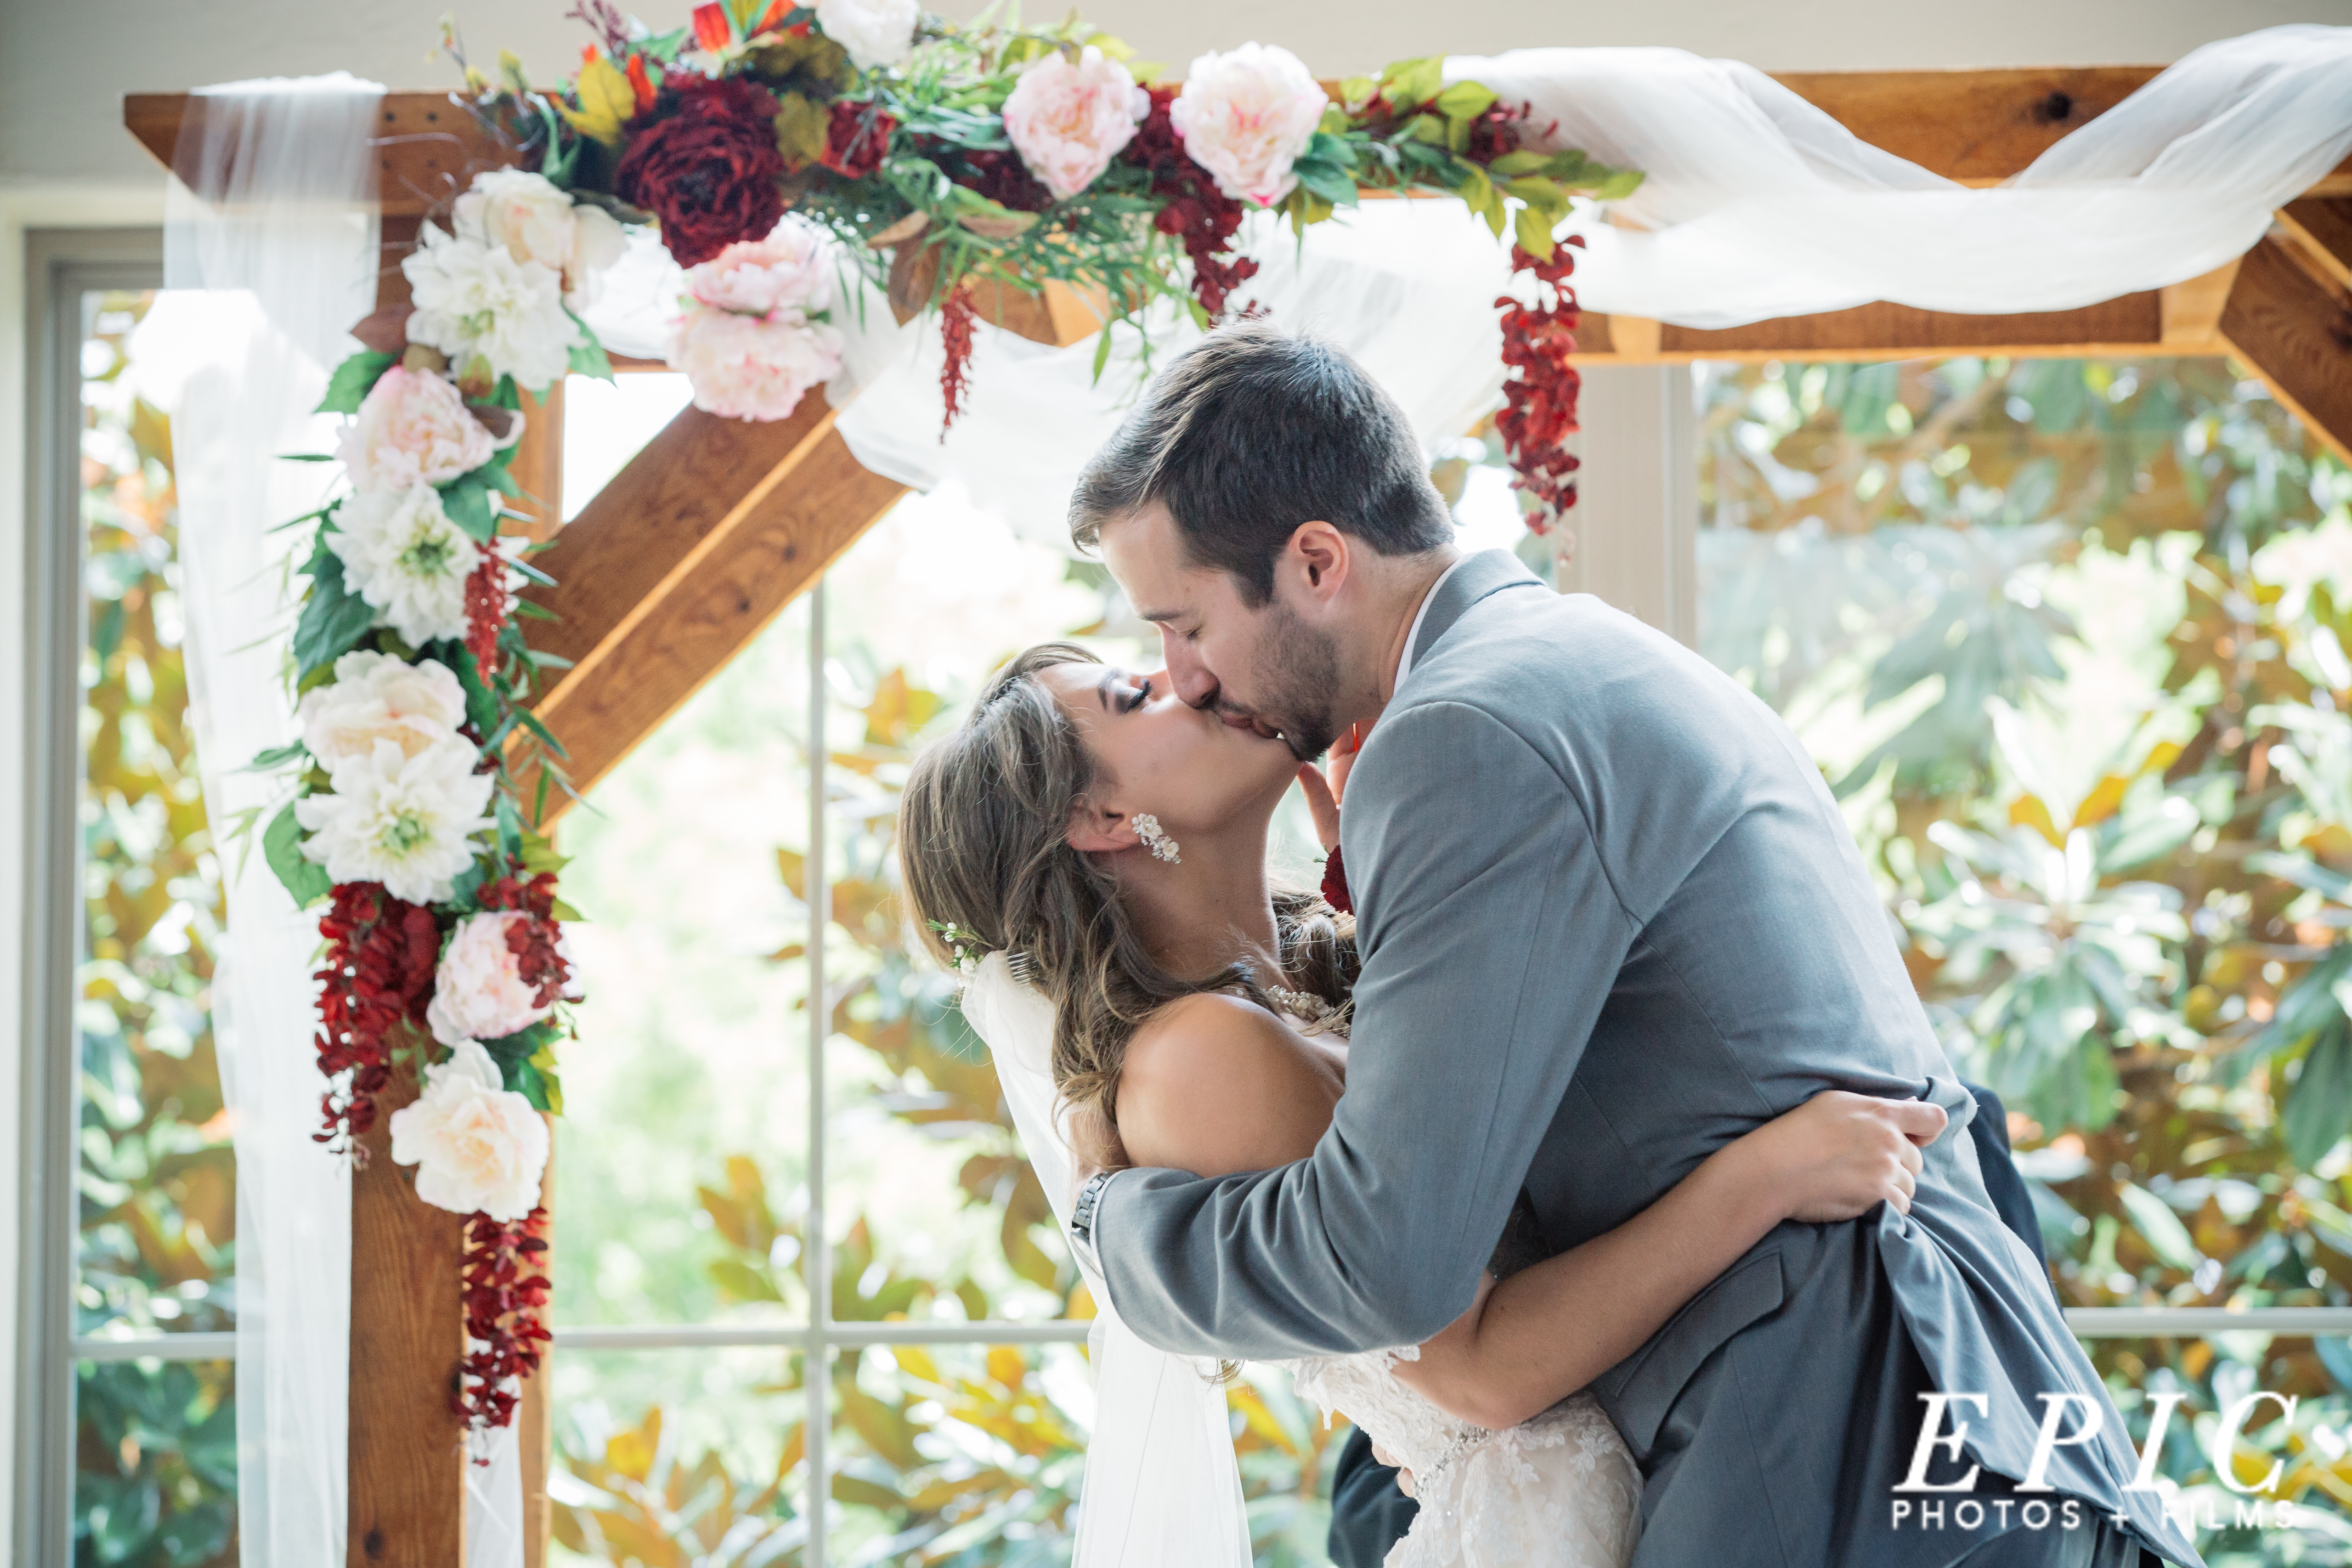 Bride and grrom kiss for the first time as man and wife under a wooden wedding arch covered in large pink and deep red flowers with shear white fabric